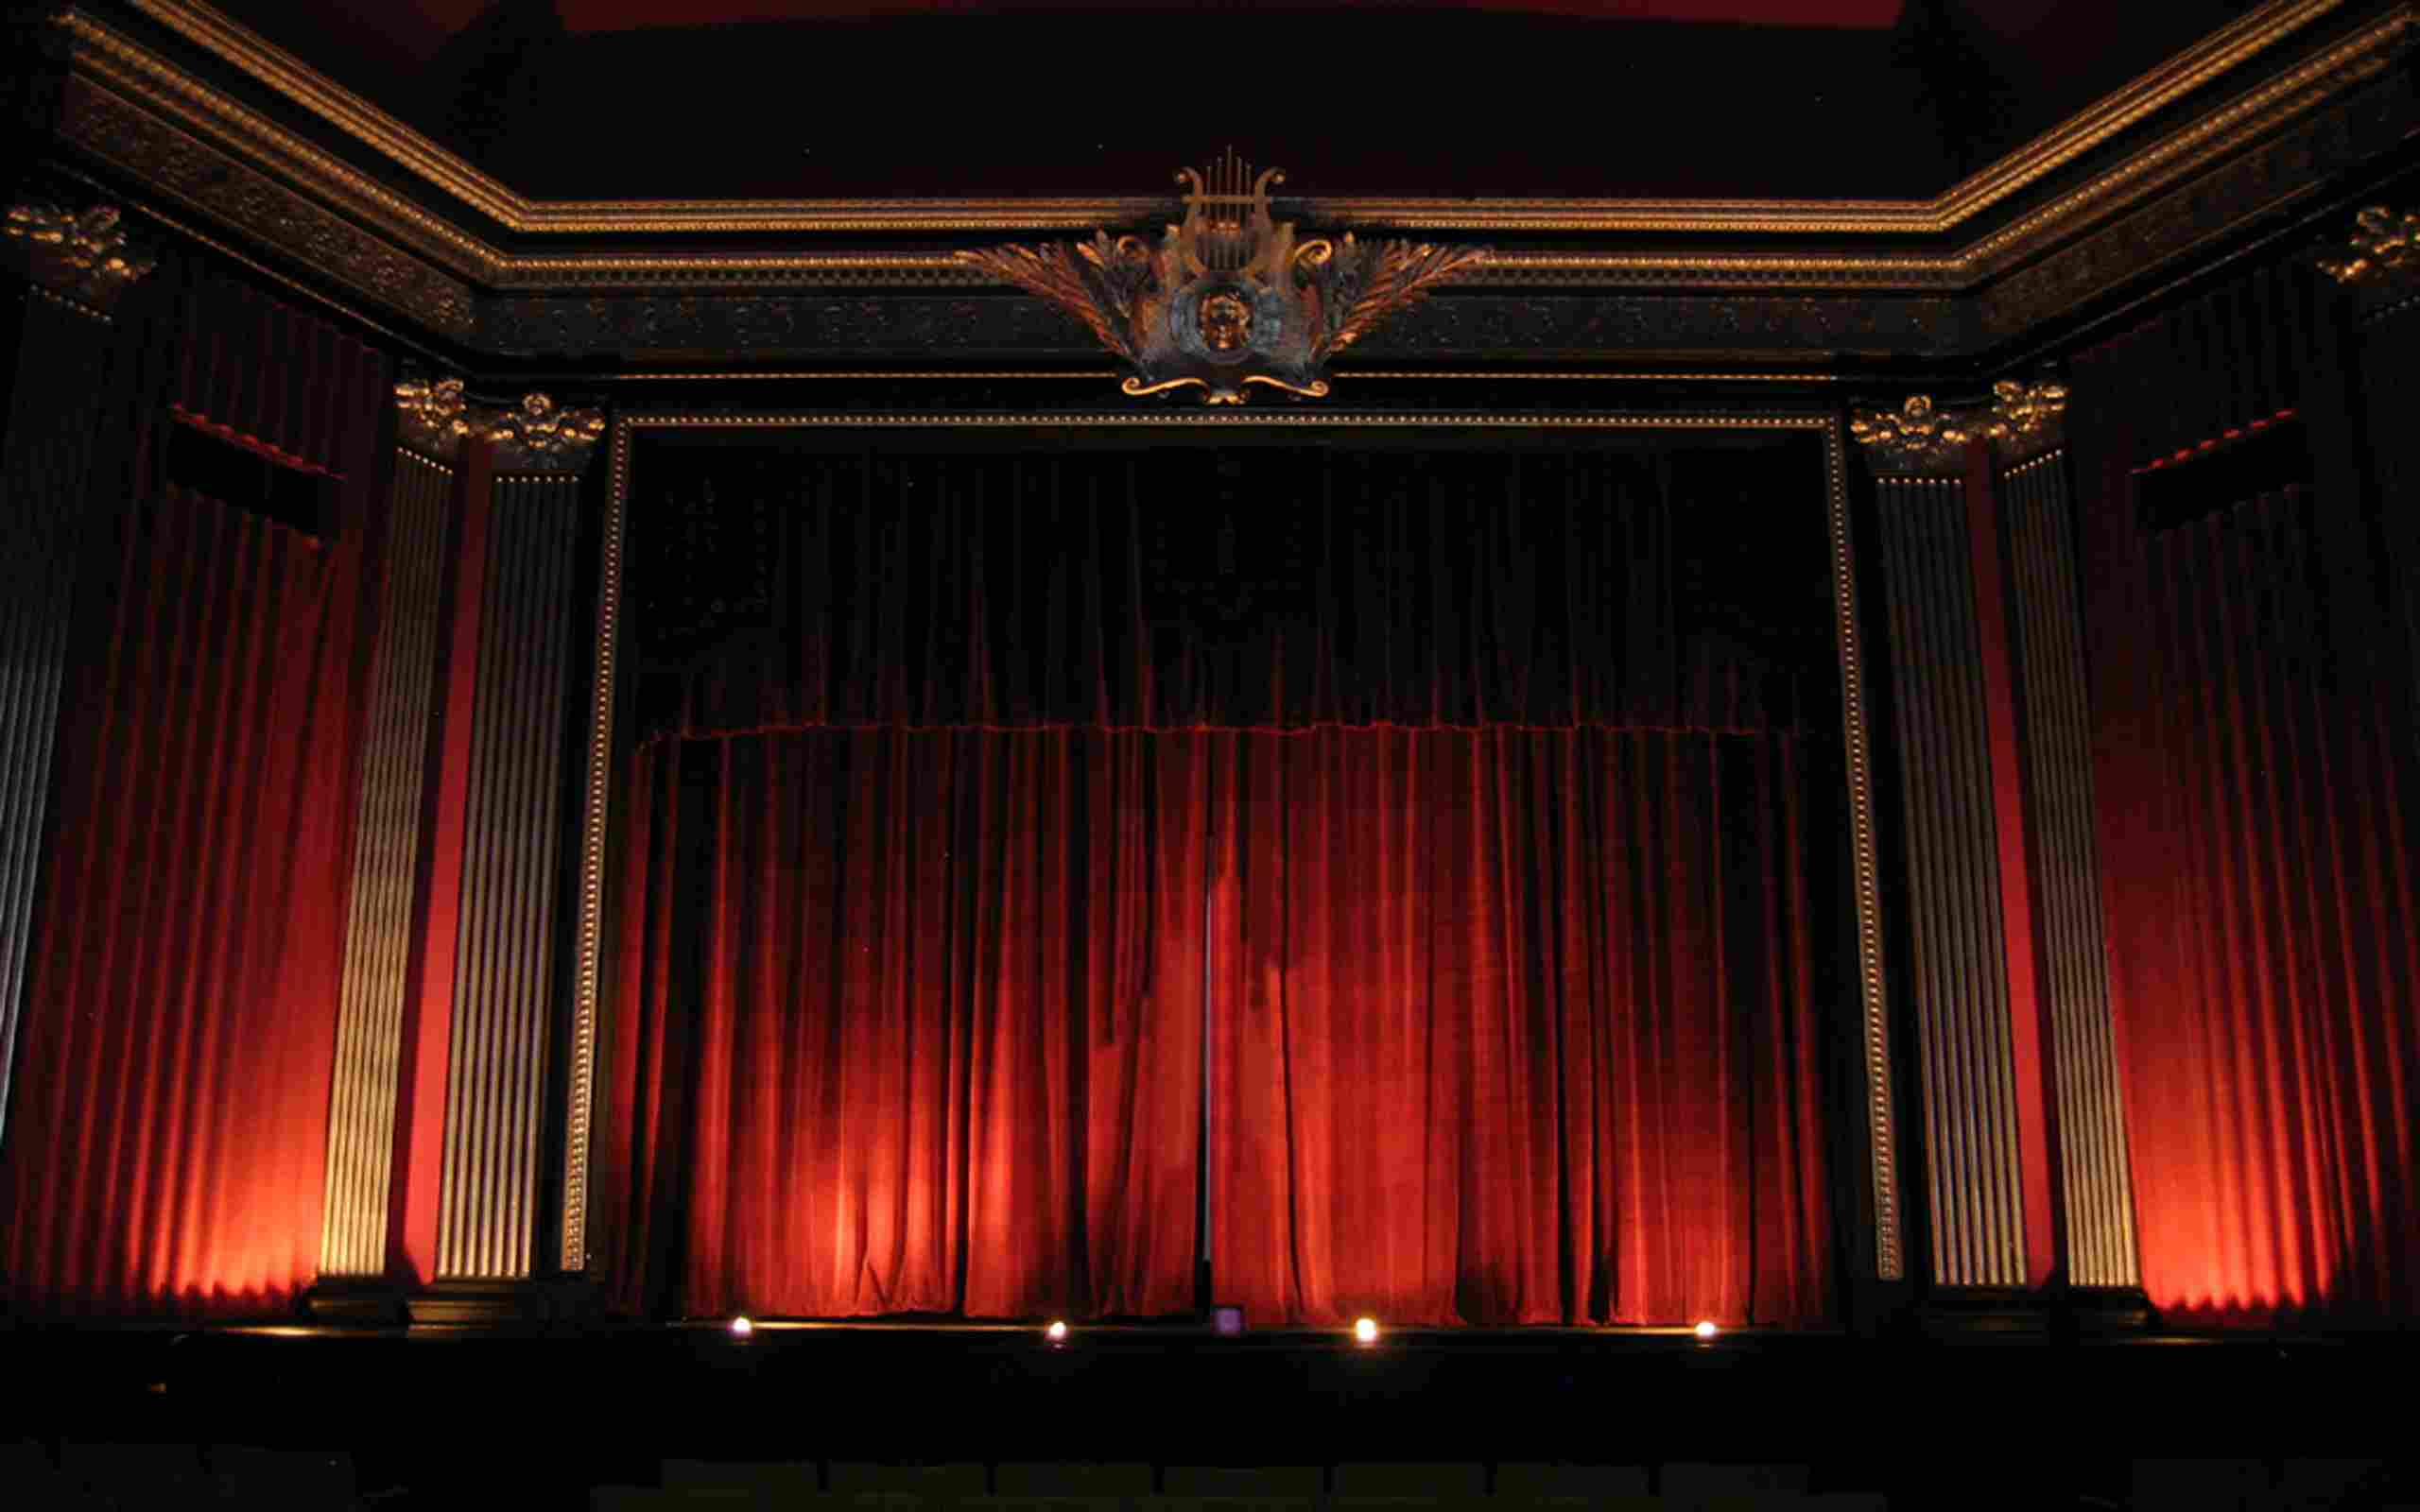 Fotos Cortinas Teatro